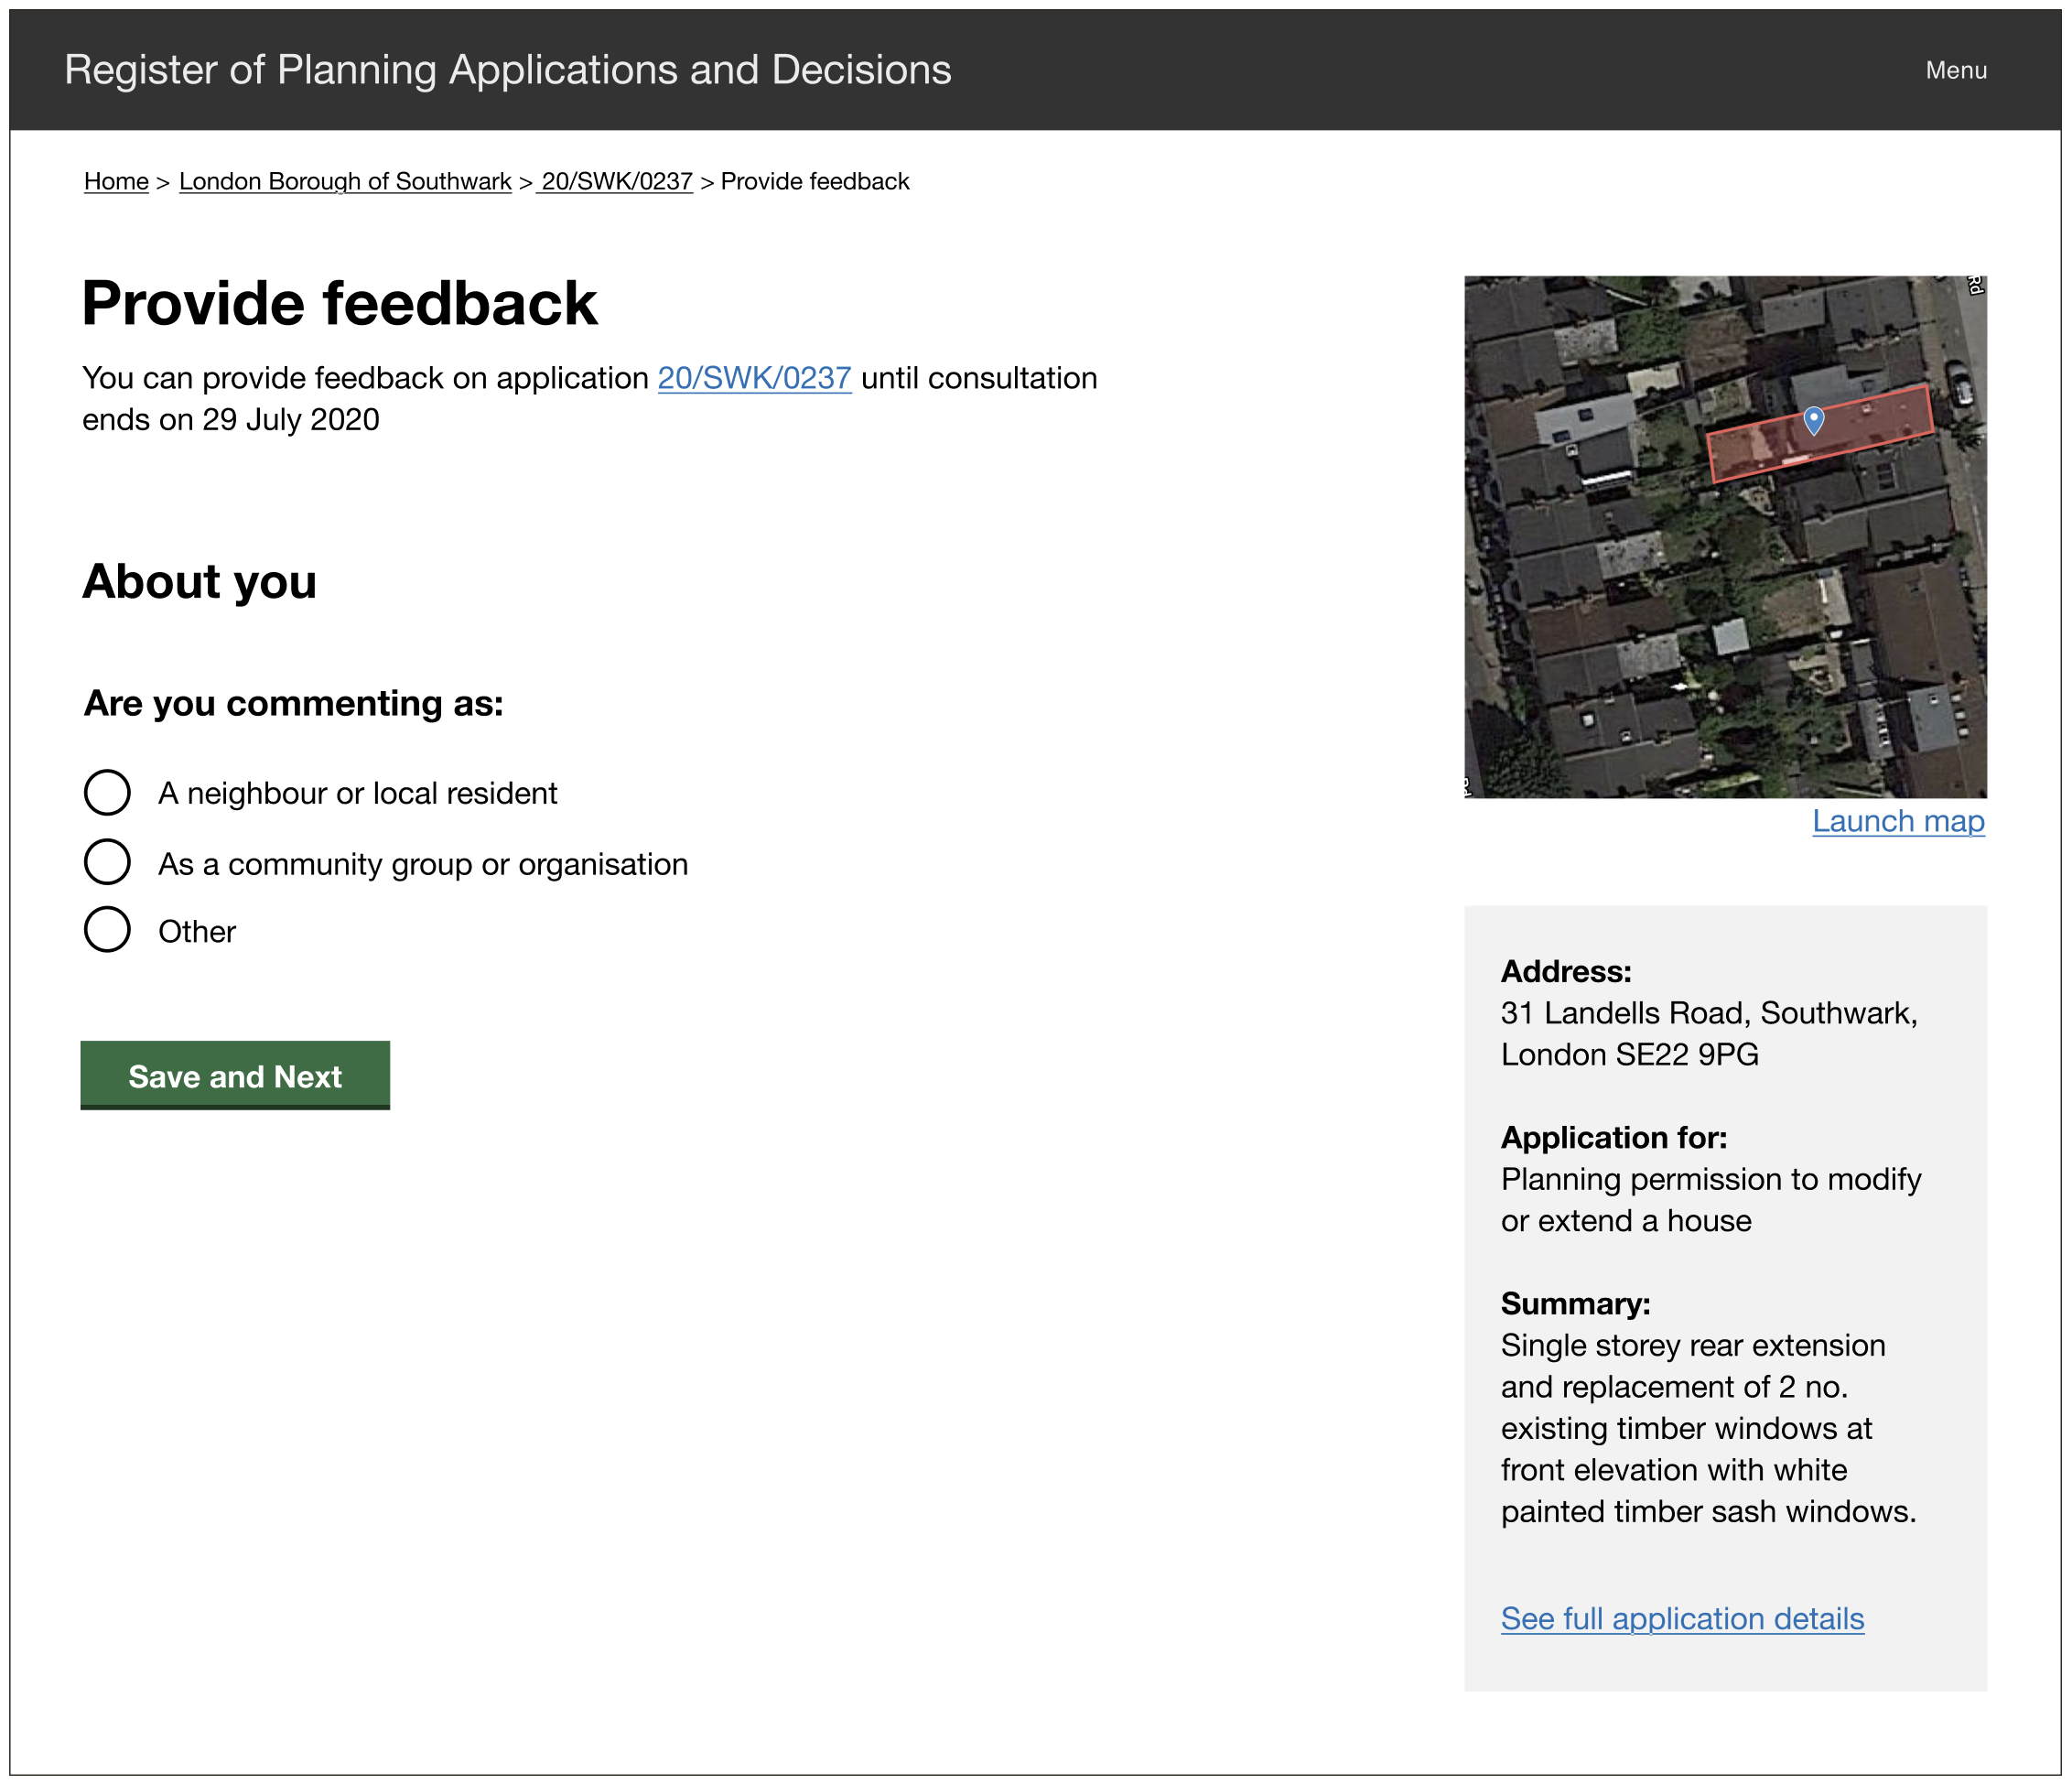 Screenshot from prototype showing the first step on a consultation feedback form, asking users to choose the capacity in which they are commenting. They can choose one of three options: a neighbour or local resident, a community group or organisation, other.